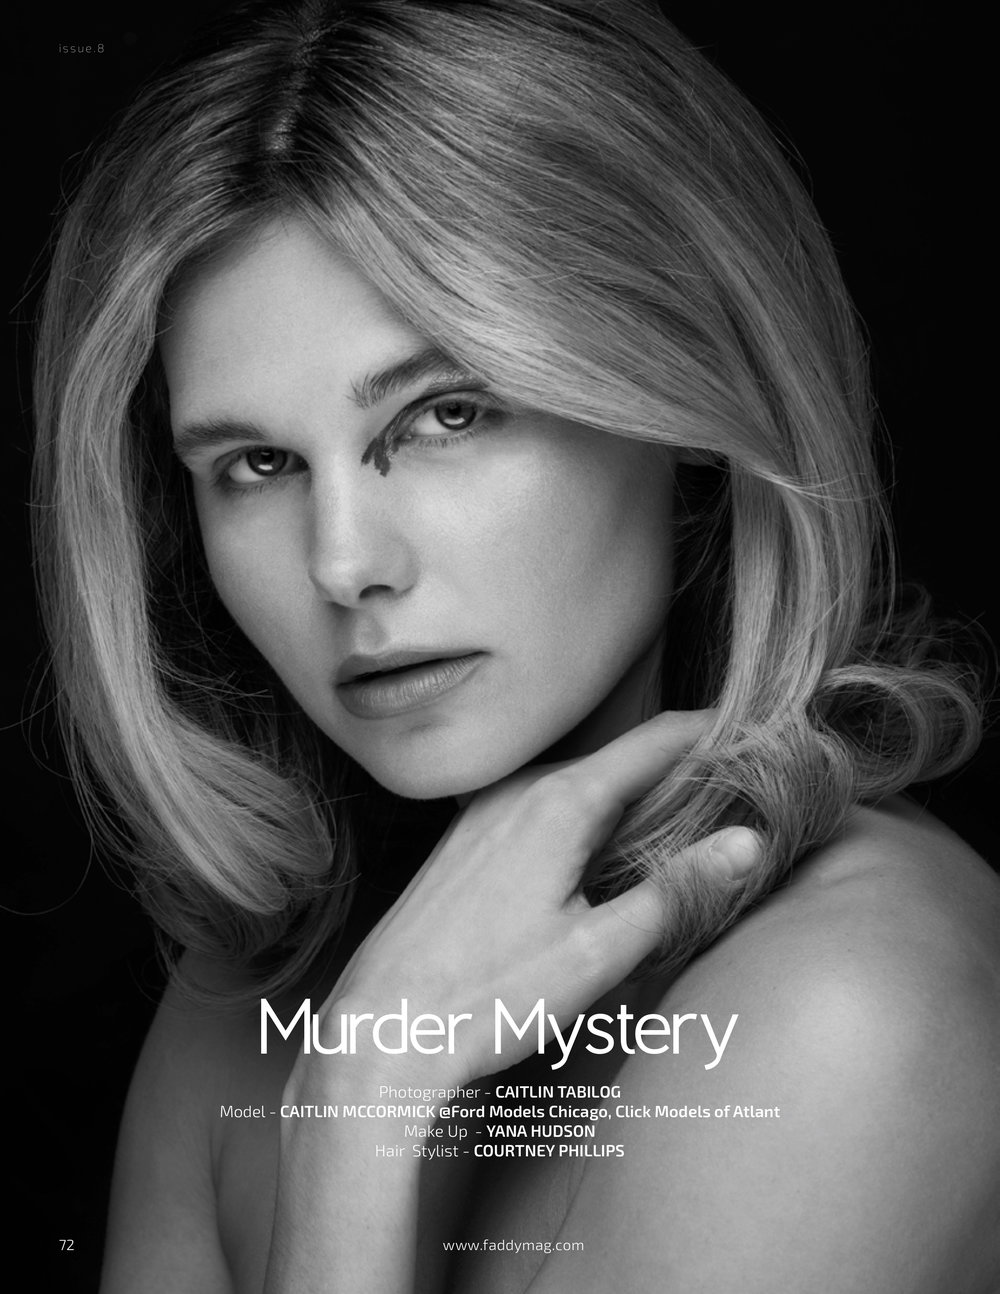 Murder Mystery published in Faddy Magazine  Model: Caitlin McCormick  Agency: Click Models of Atlanta, Ford Models of Chicago  Makeup: Yana Hudson  Hair: Courtney Phillips